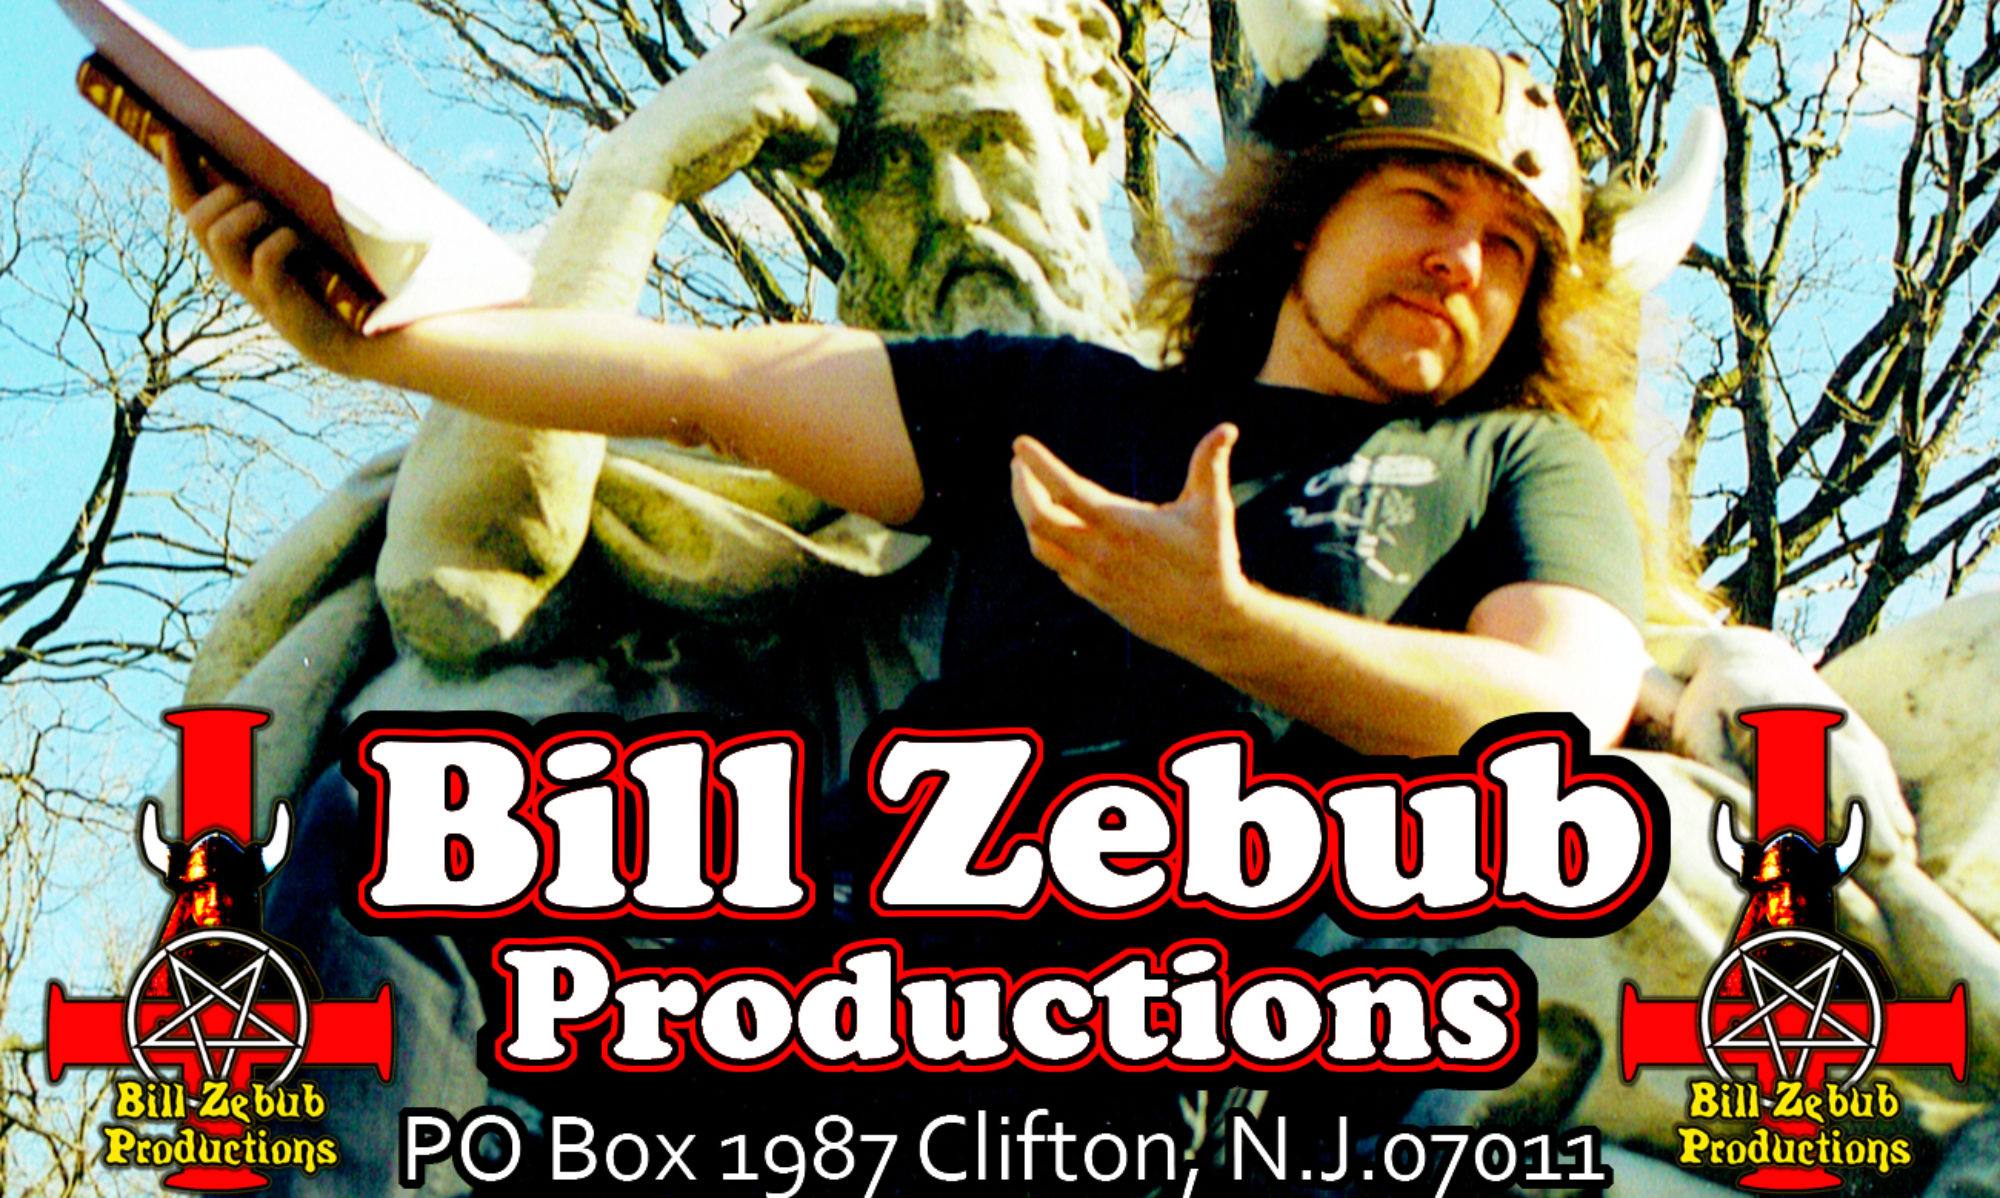 Bill Zebub Productions